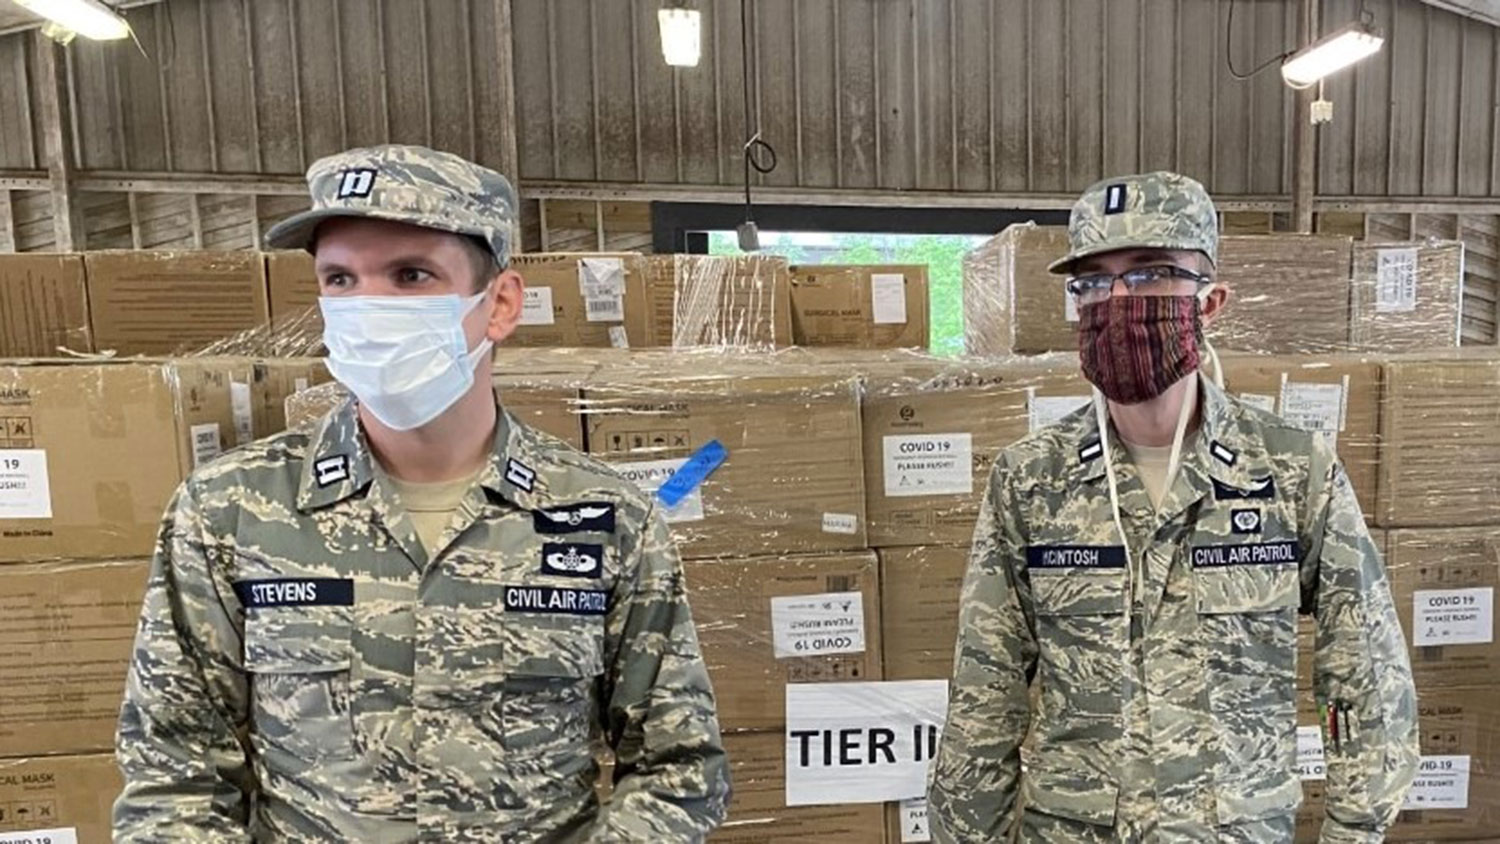 two men in Civil Air Patrol uniforms at a PPE distribution site in NC